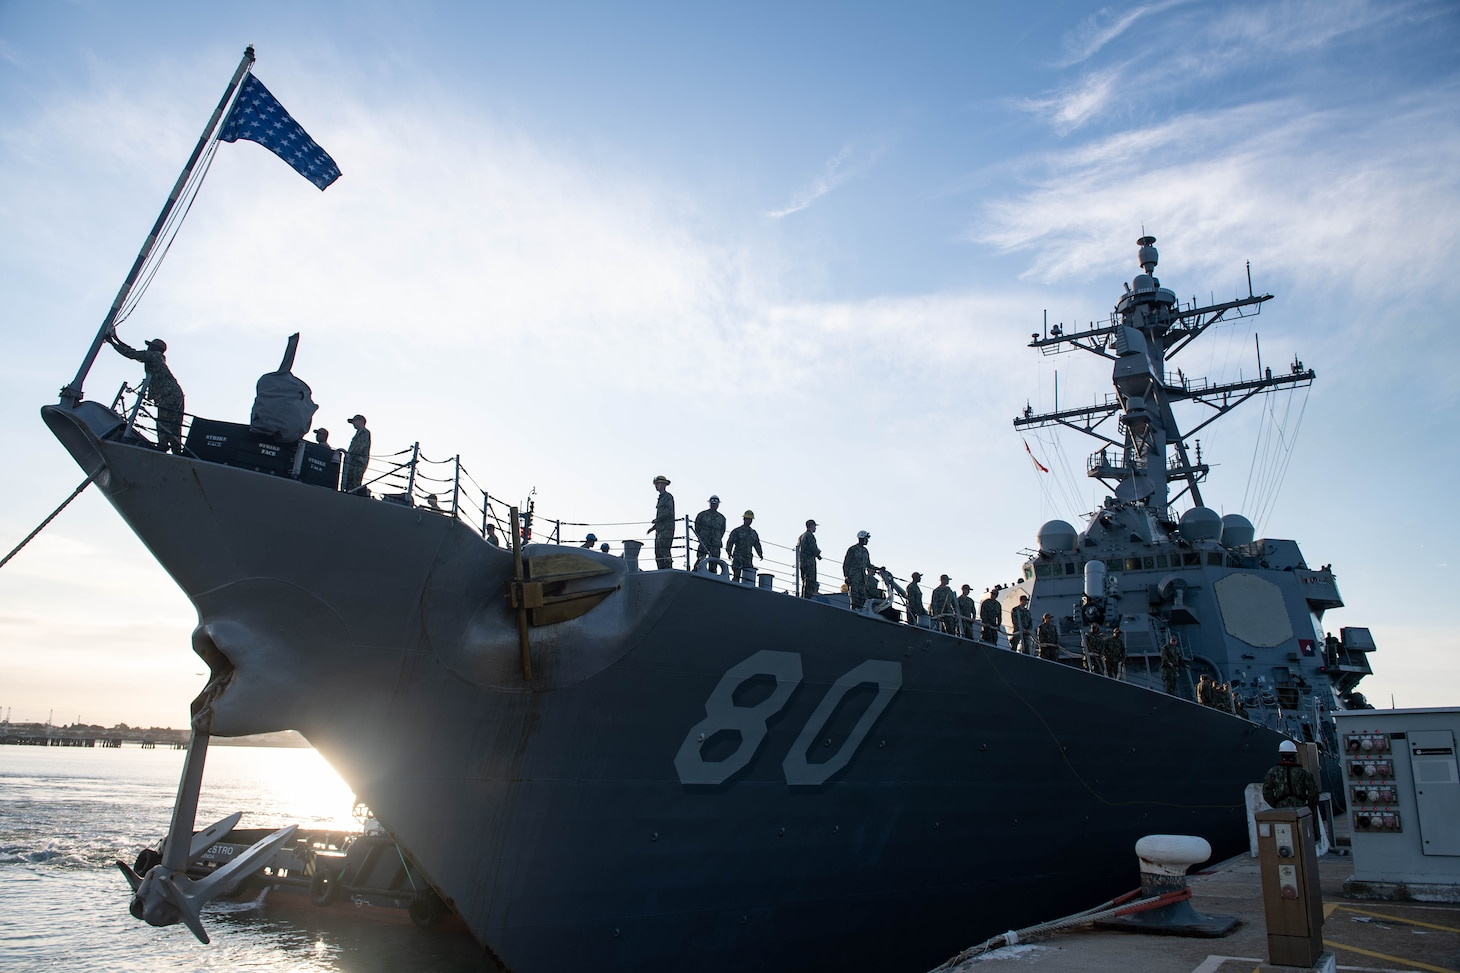 200419-N-CE622-0085  ROTA, Spain (April 19, 2020) -- The Arleigh Burke-class guided-missile destroyer USS Roosevelt (DDG 80) arrives at Naval Station Rota as part of its homeport shift, April 19, 2020. Roosevelt replaces USS Carney (DDG 64) as one of four forward deployed naval forces (FDNF) in Spain. Named in honor of President Franklin D. Roosevelt and his wife Eleanor, Roosevelt will be the first Flight IIA Arleigh Burke-class guided-missile destroyer stationed in Rota, providing the ability to deploy with two embarked Lamps MK III MH-60B Sea Hawk helicopters.